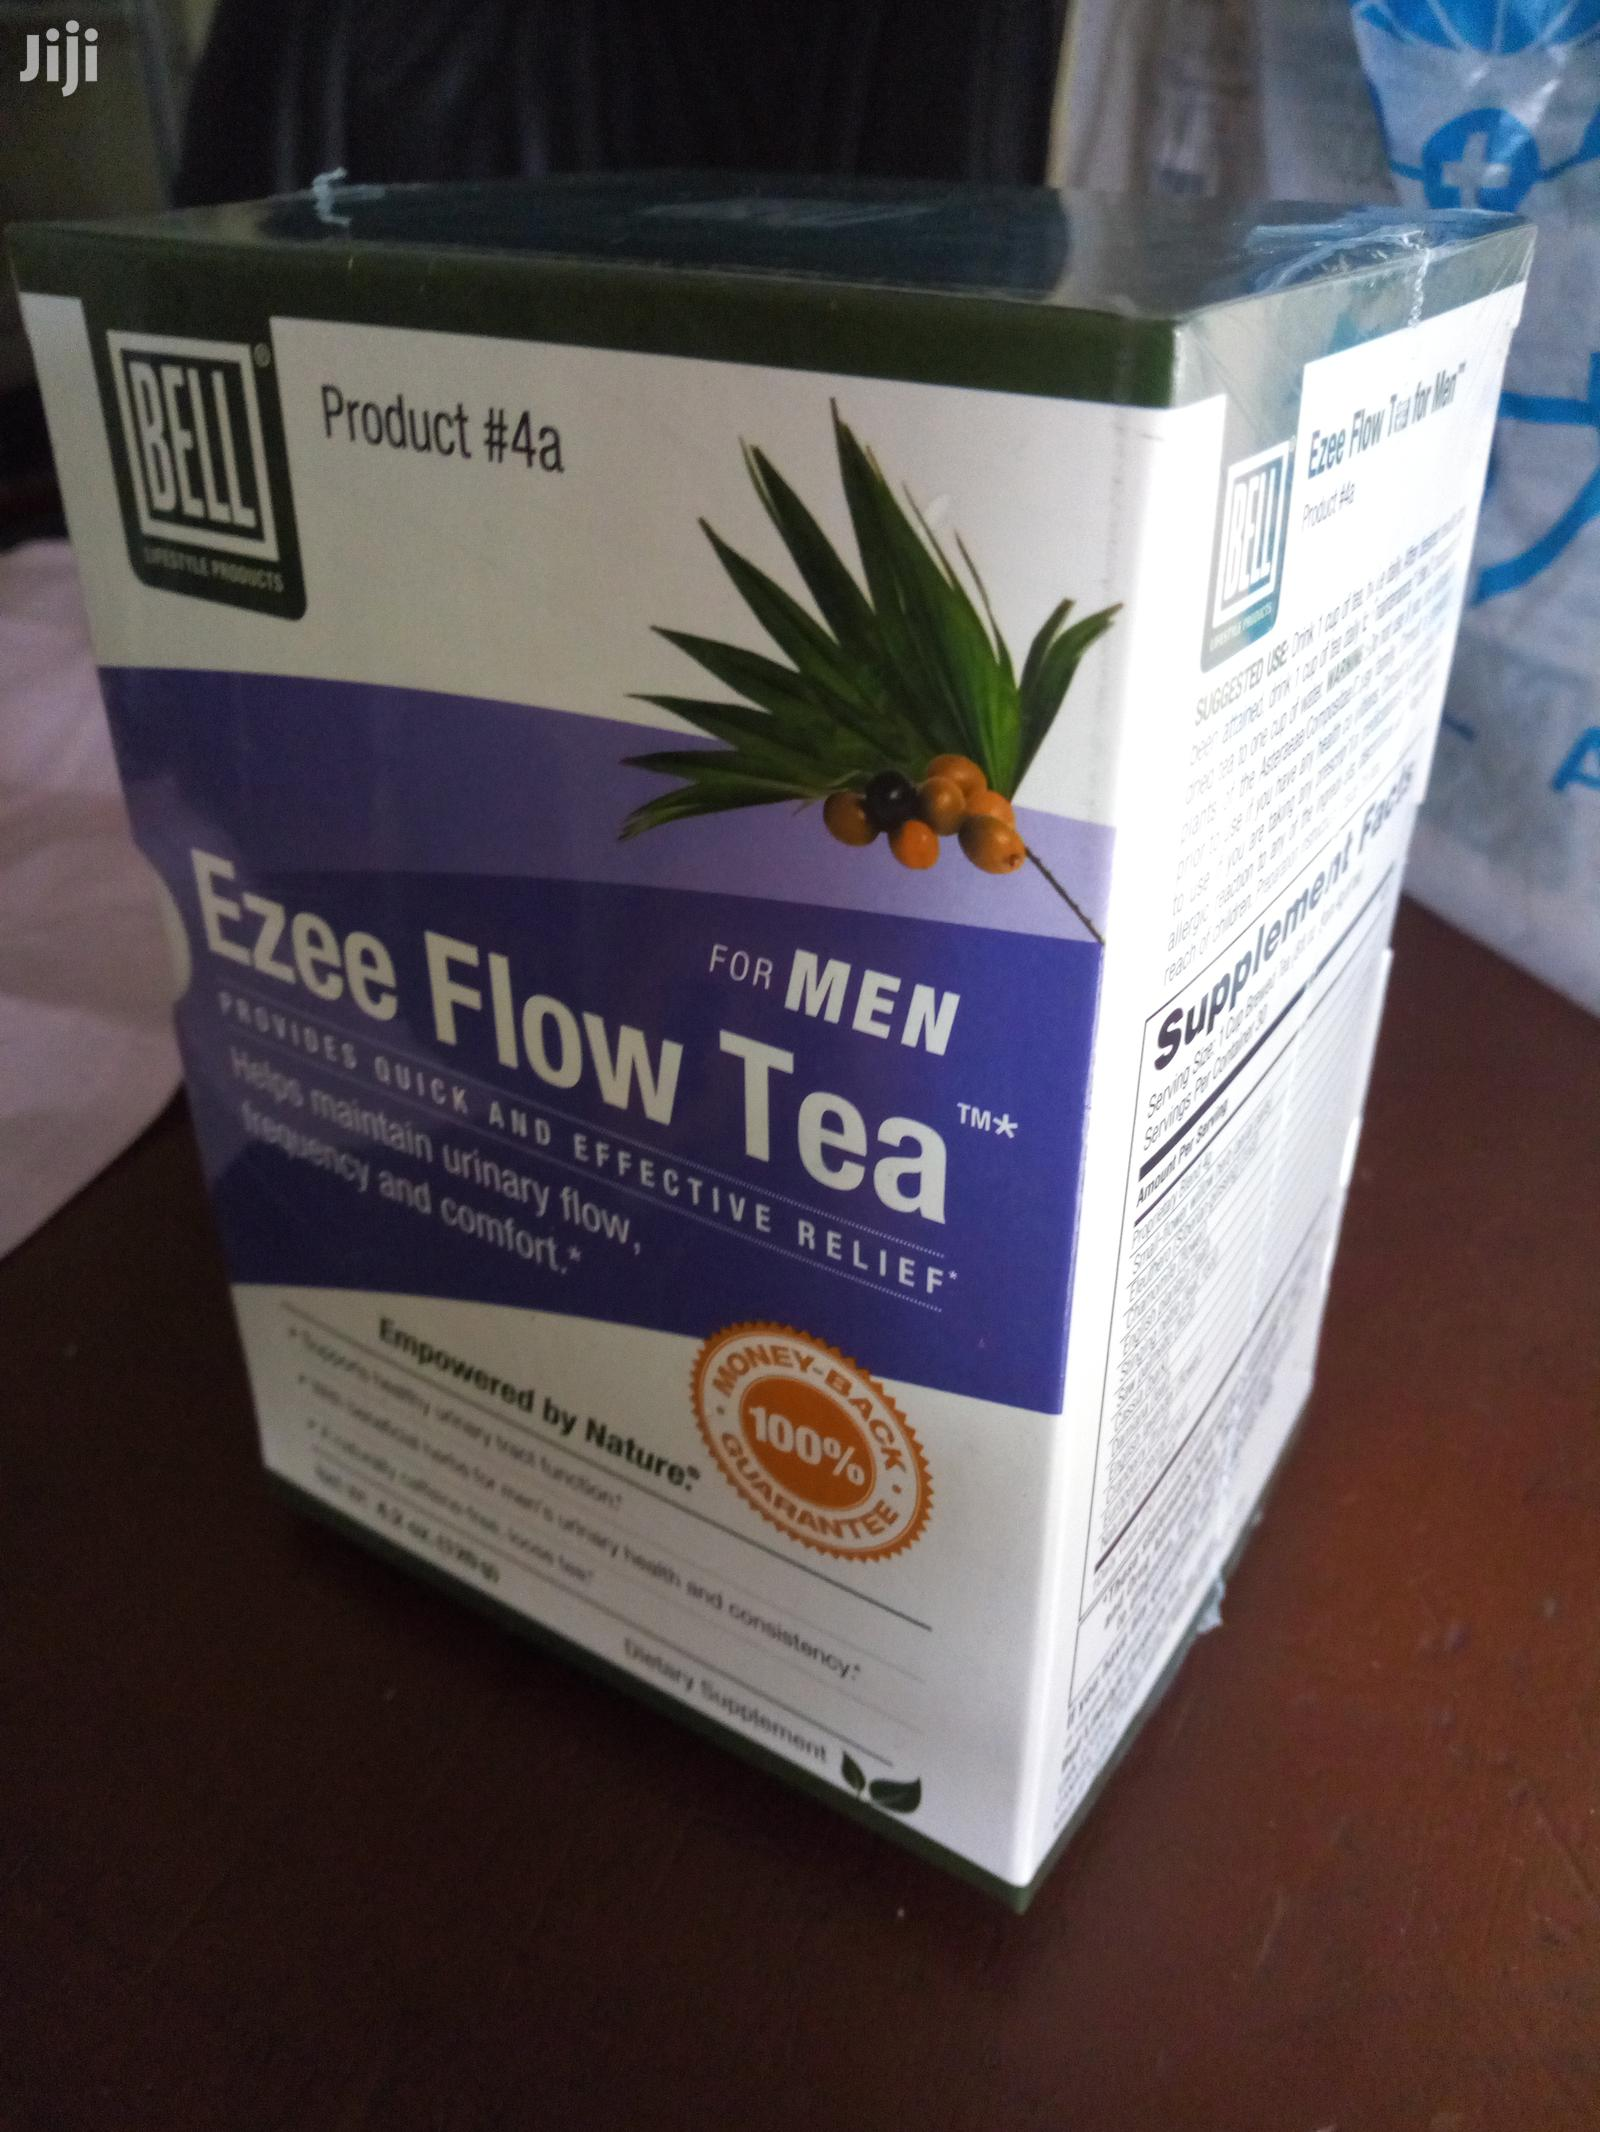 Ezea Flow Tea. Stop Frequent Urination and Prostate Enlargement   Vitamins & Supplements for sale in Awka, Anambra State, Nigeria